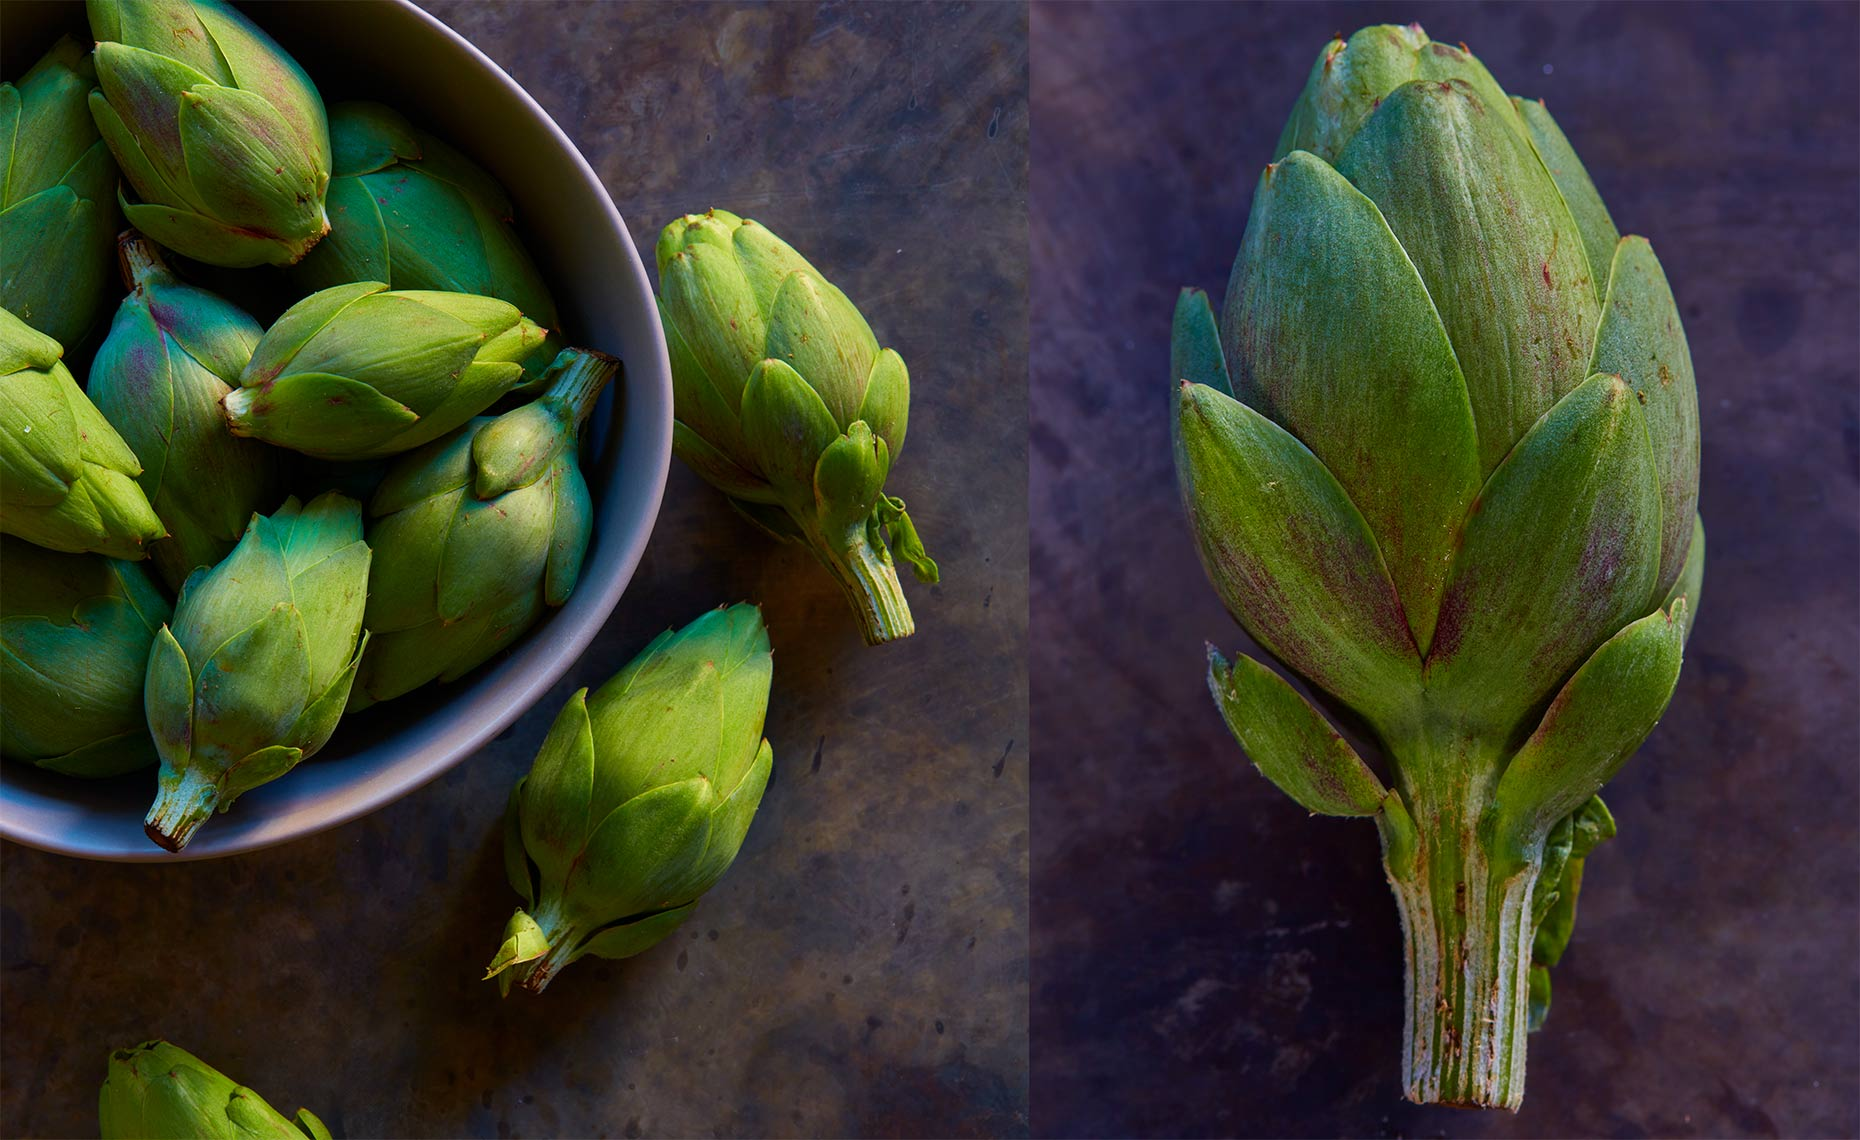 appetizers-fruits-vegetables-photographers-artichokes